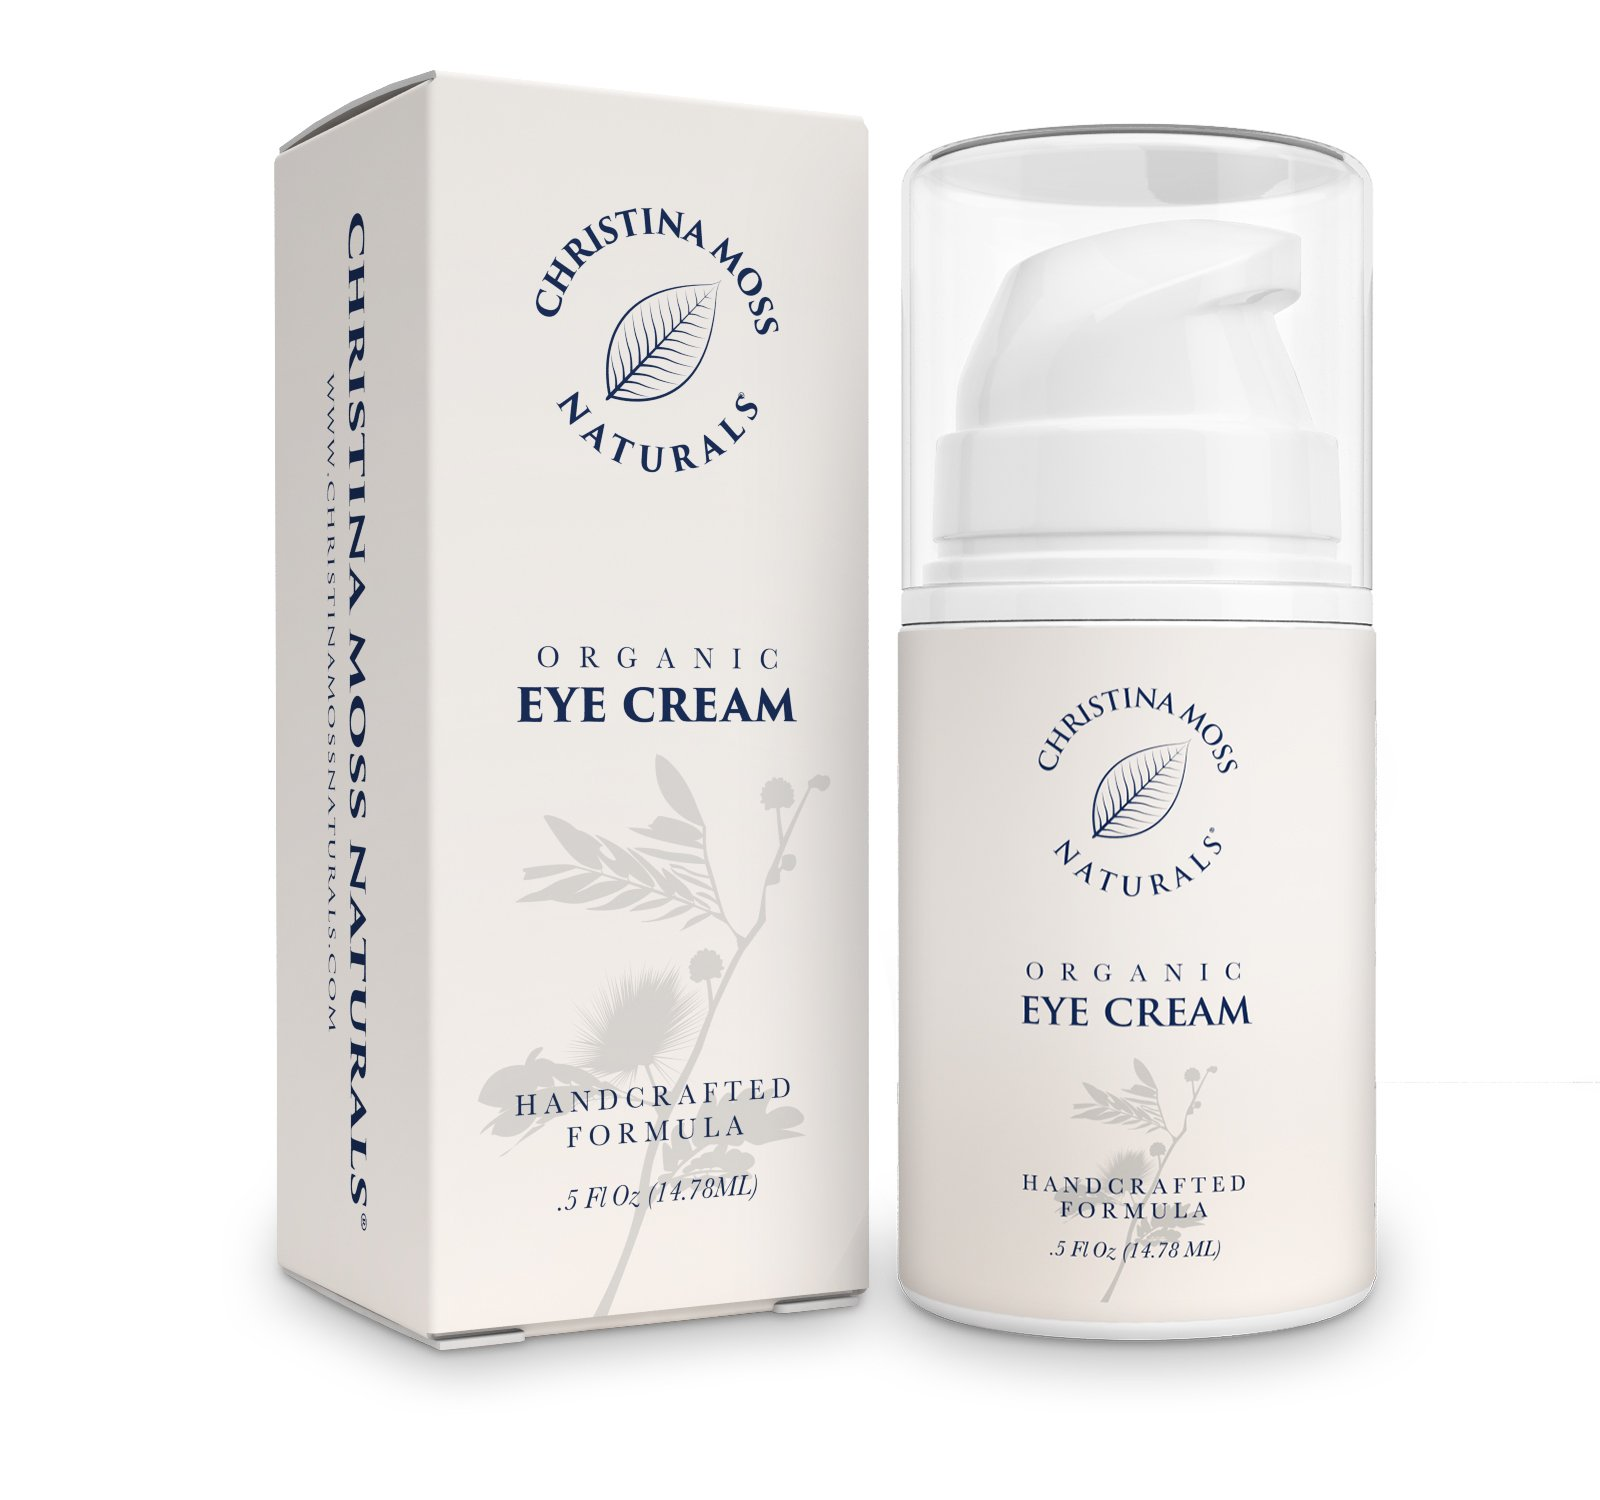 Eye Cream Moisturizer Organic & Natural Ingredients. Anti Wrinkle Anti Aging Firming Skin Care For Under Eyes. Unscented.